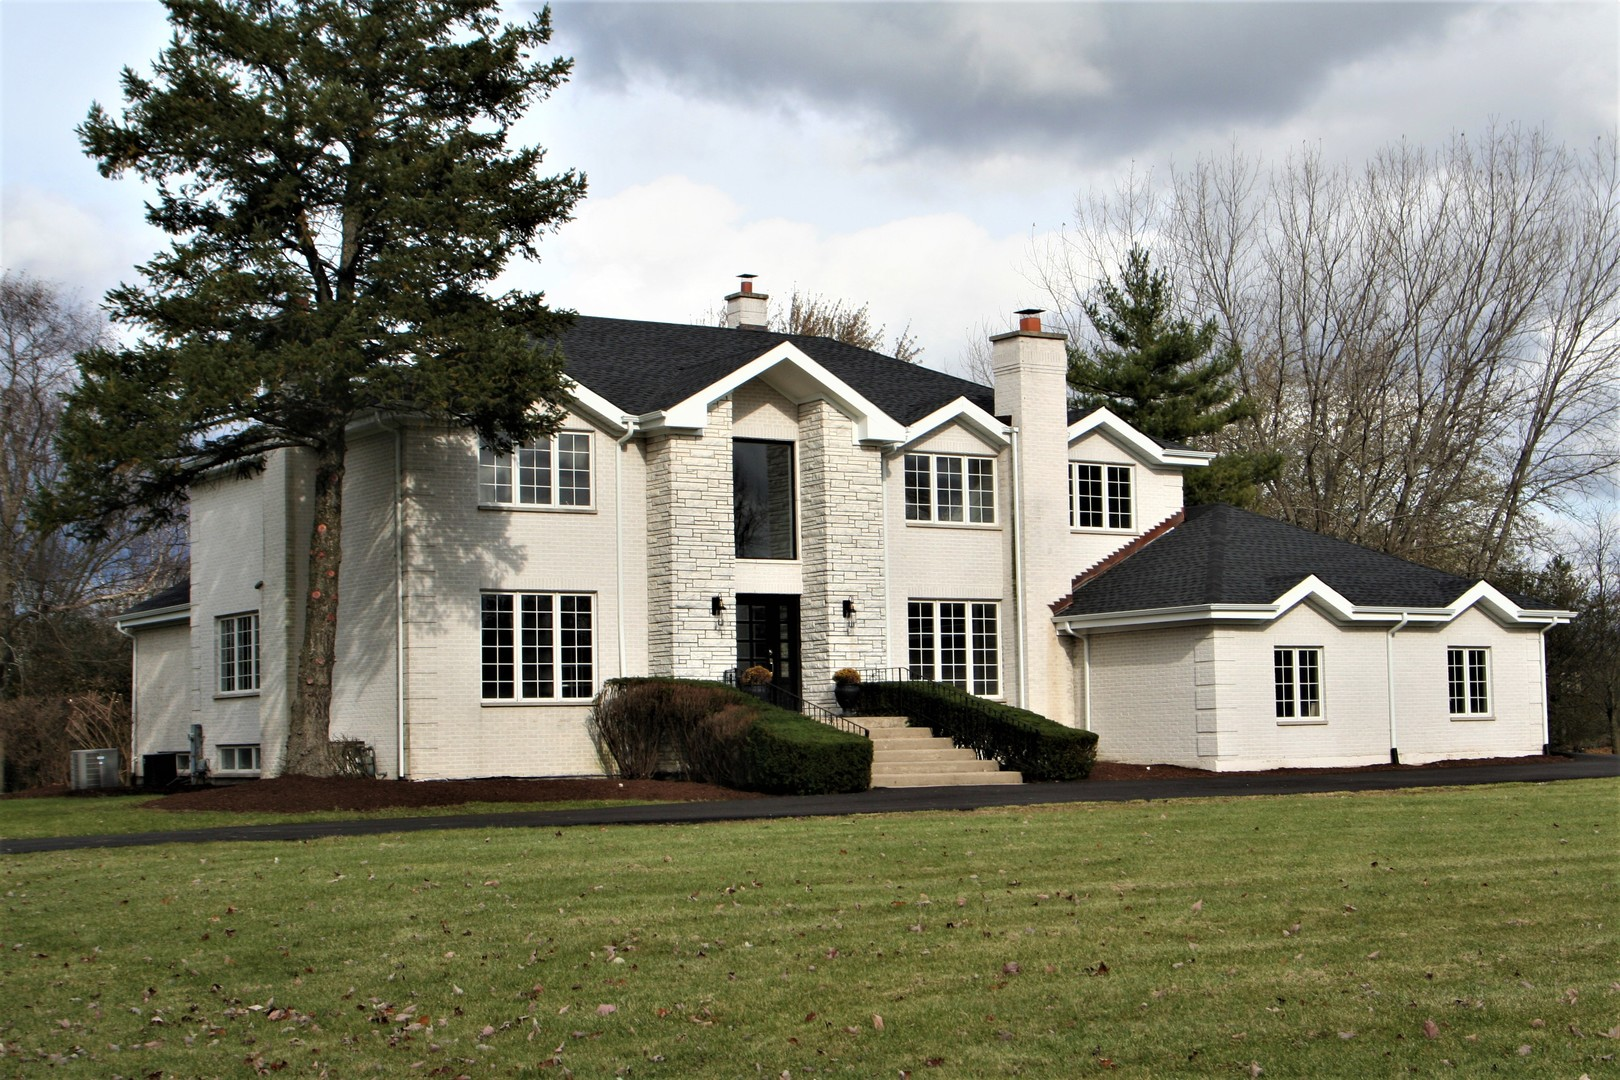 28 Lakeside Drive, South Barrington in Cook County, IL 60010 Home for Sale